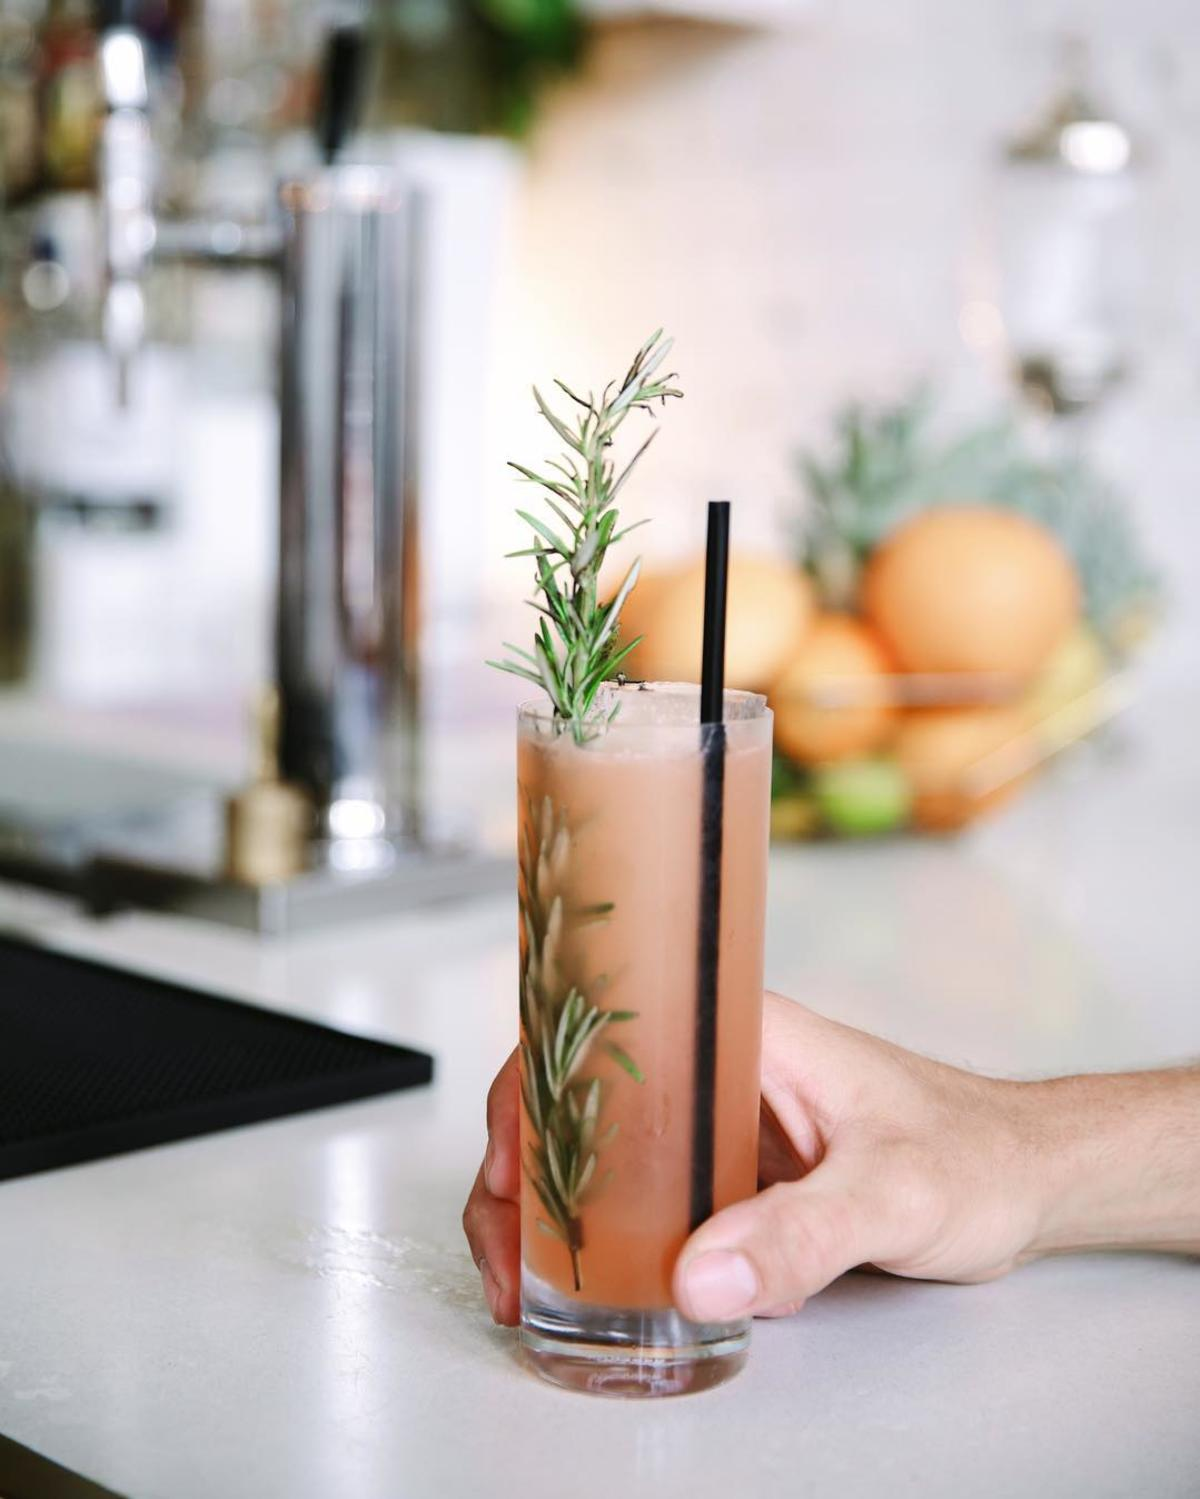 Peach-colored, summery drink with a sprig of fresh rosemary on the bar of The Public House in Bay City